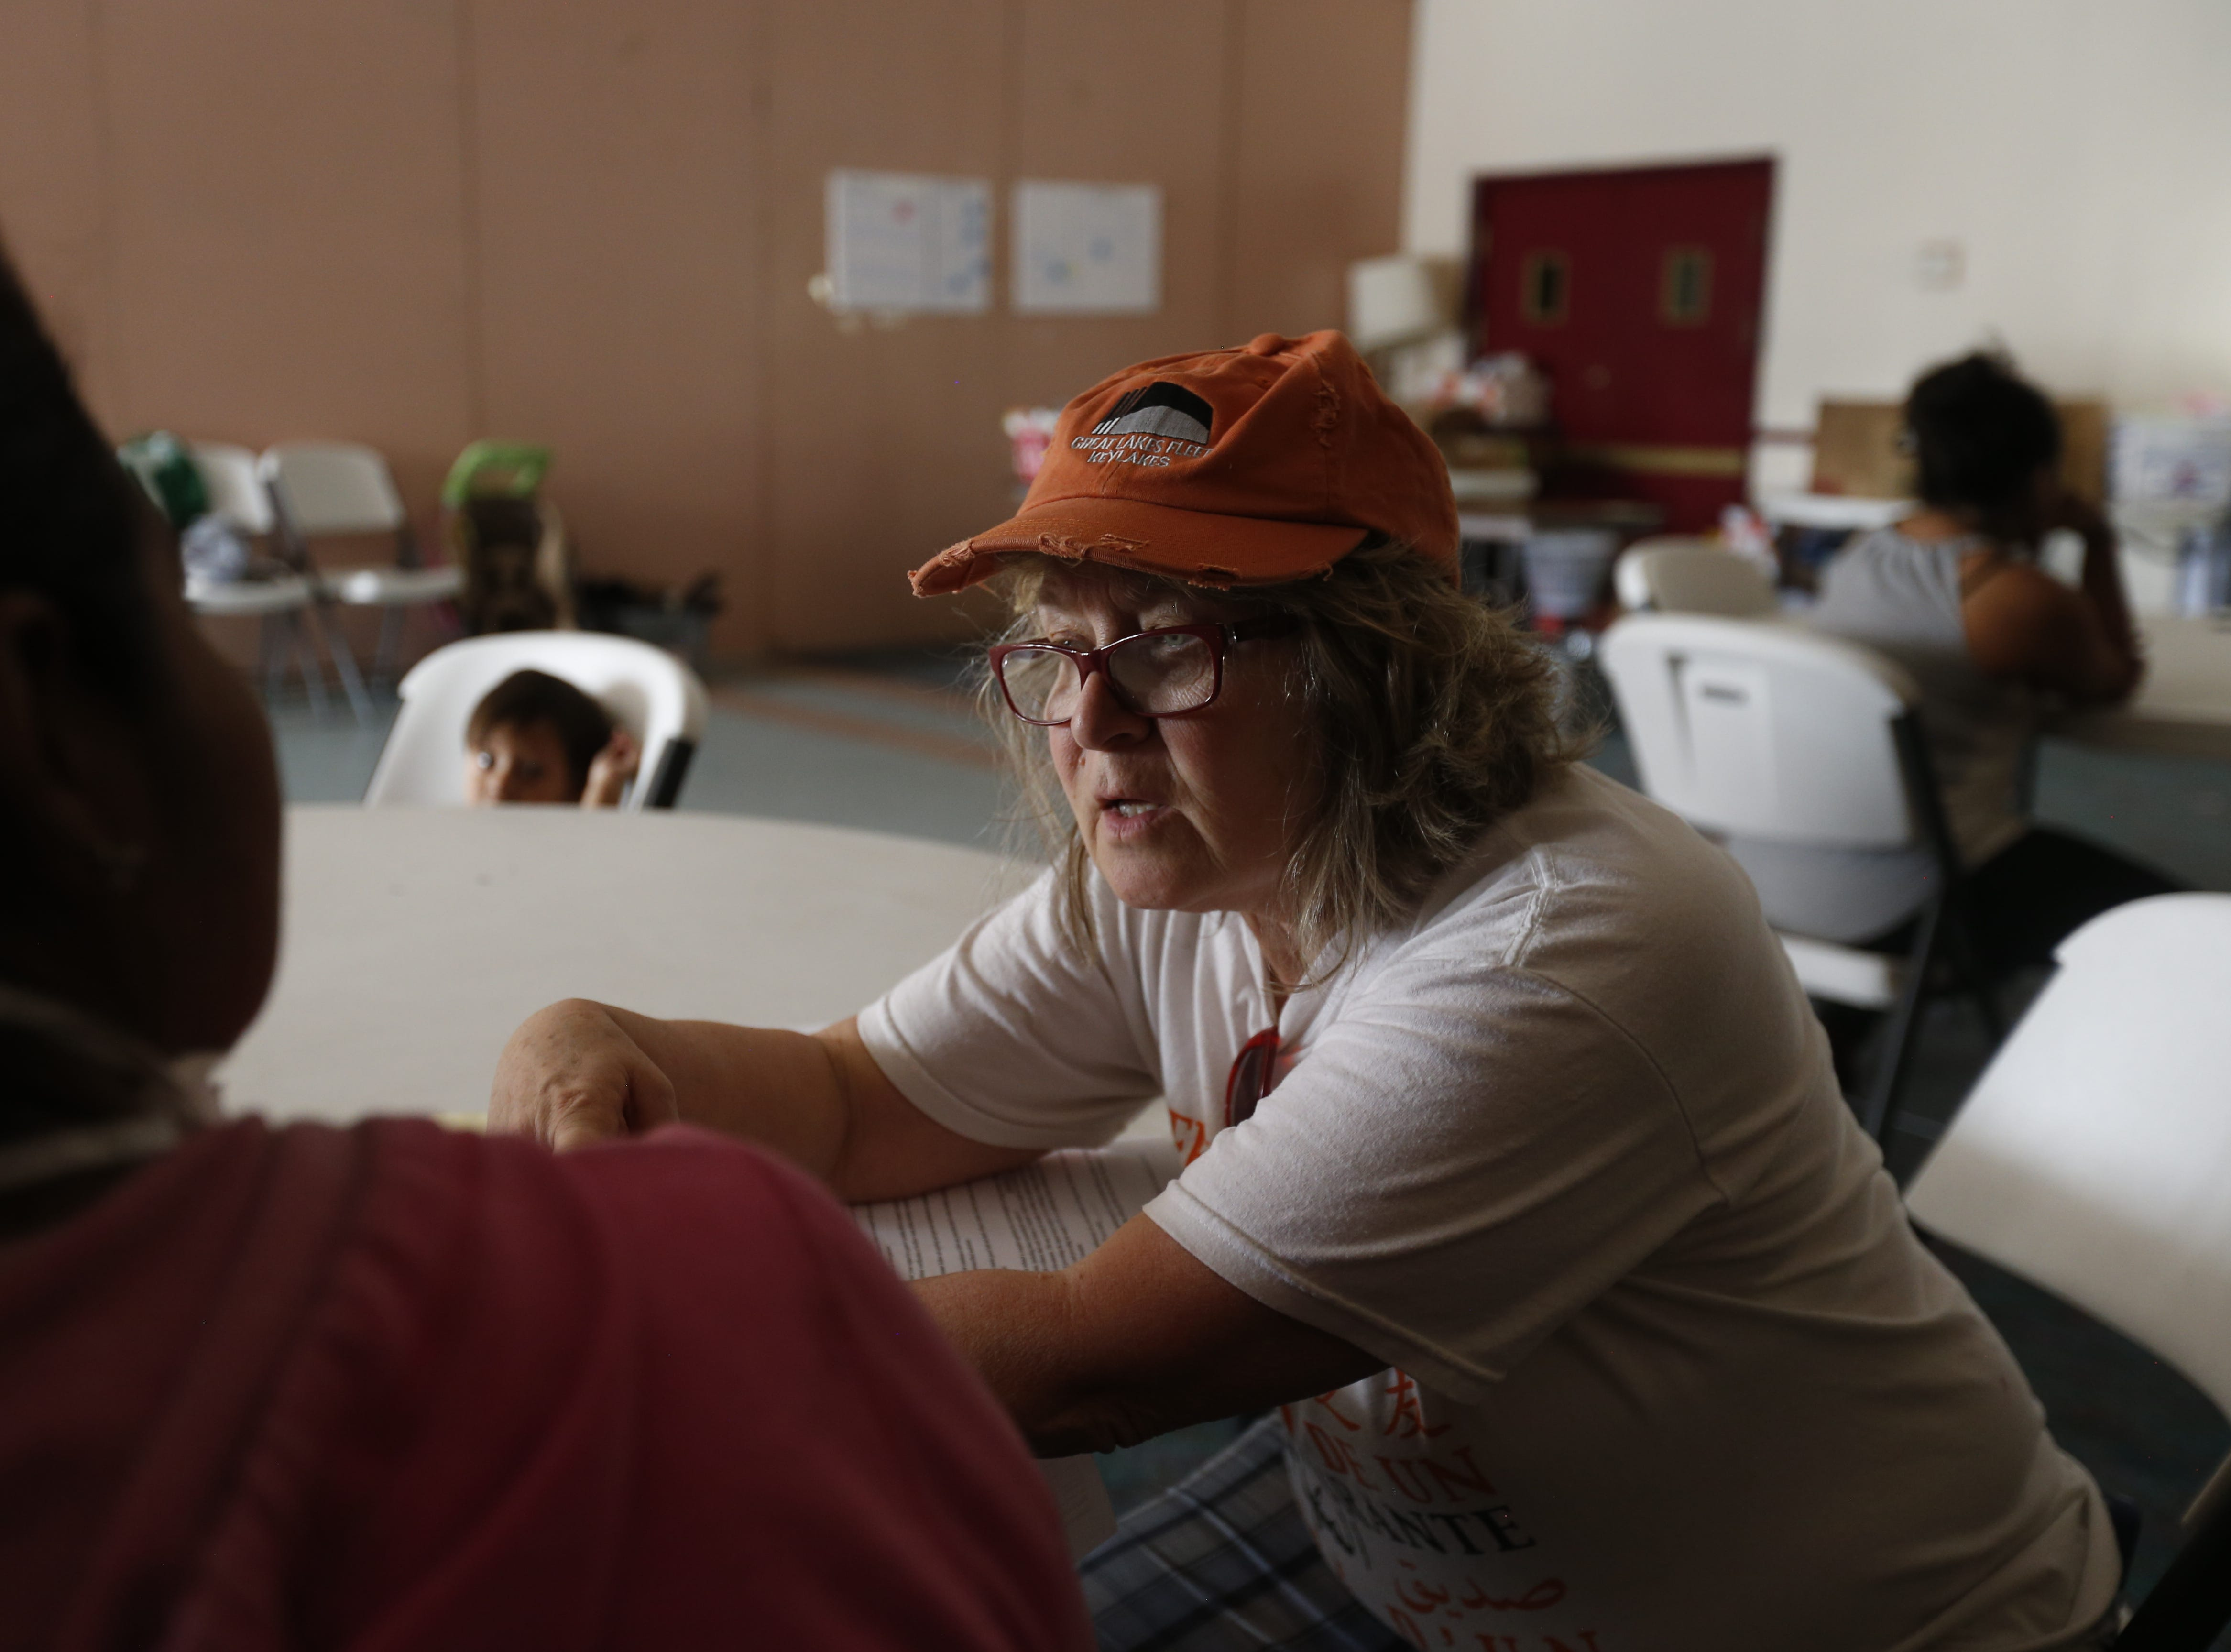 Ande McCarthy helps a migrant woman from Guatemala get in contact with her family in the United States.